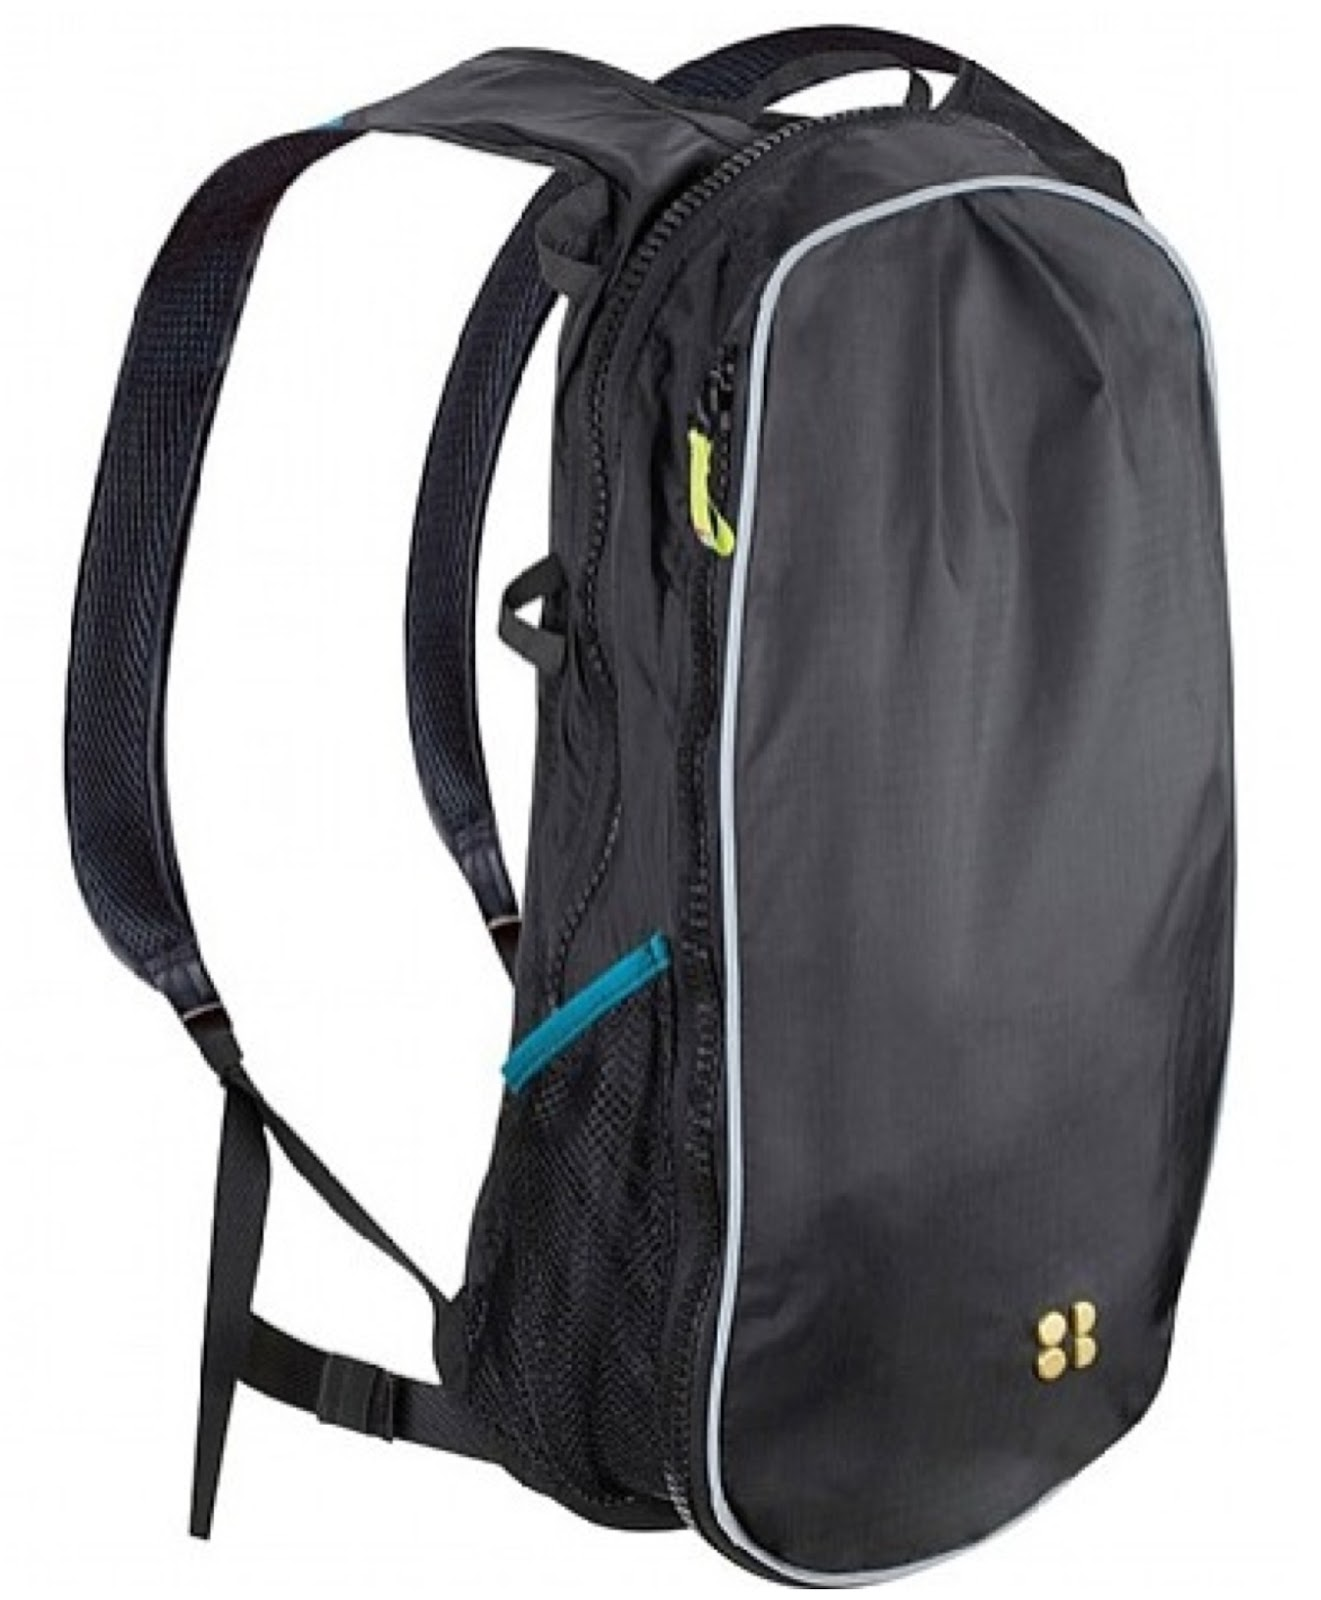 Gym Bag And Backpack: Gym Bag Weight Loss